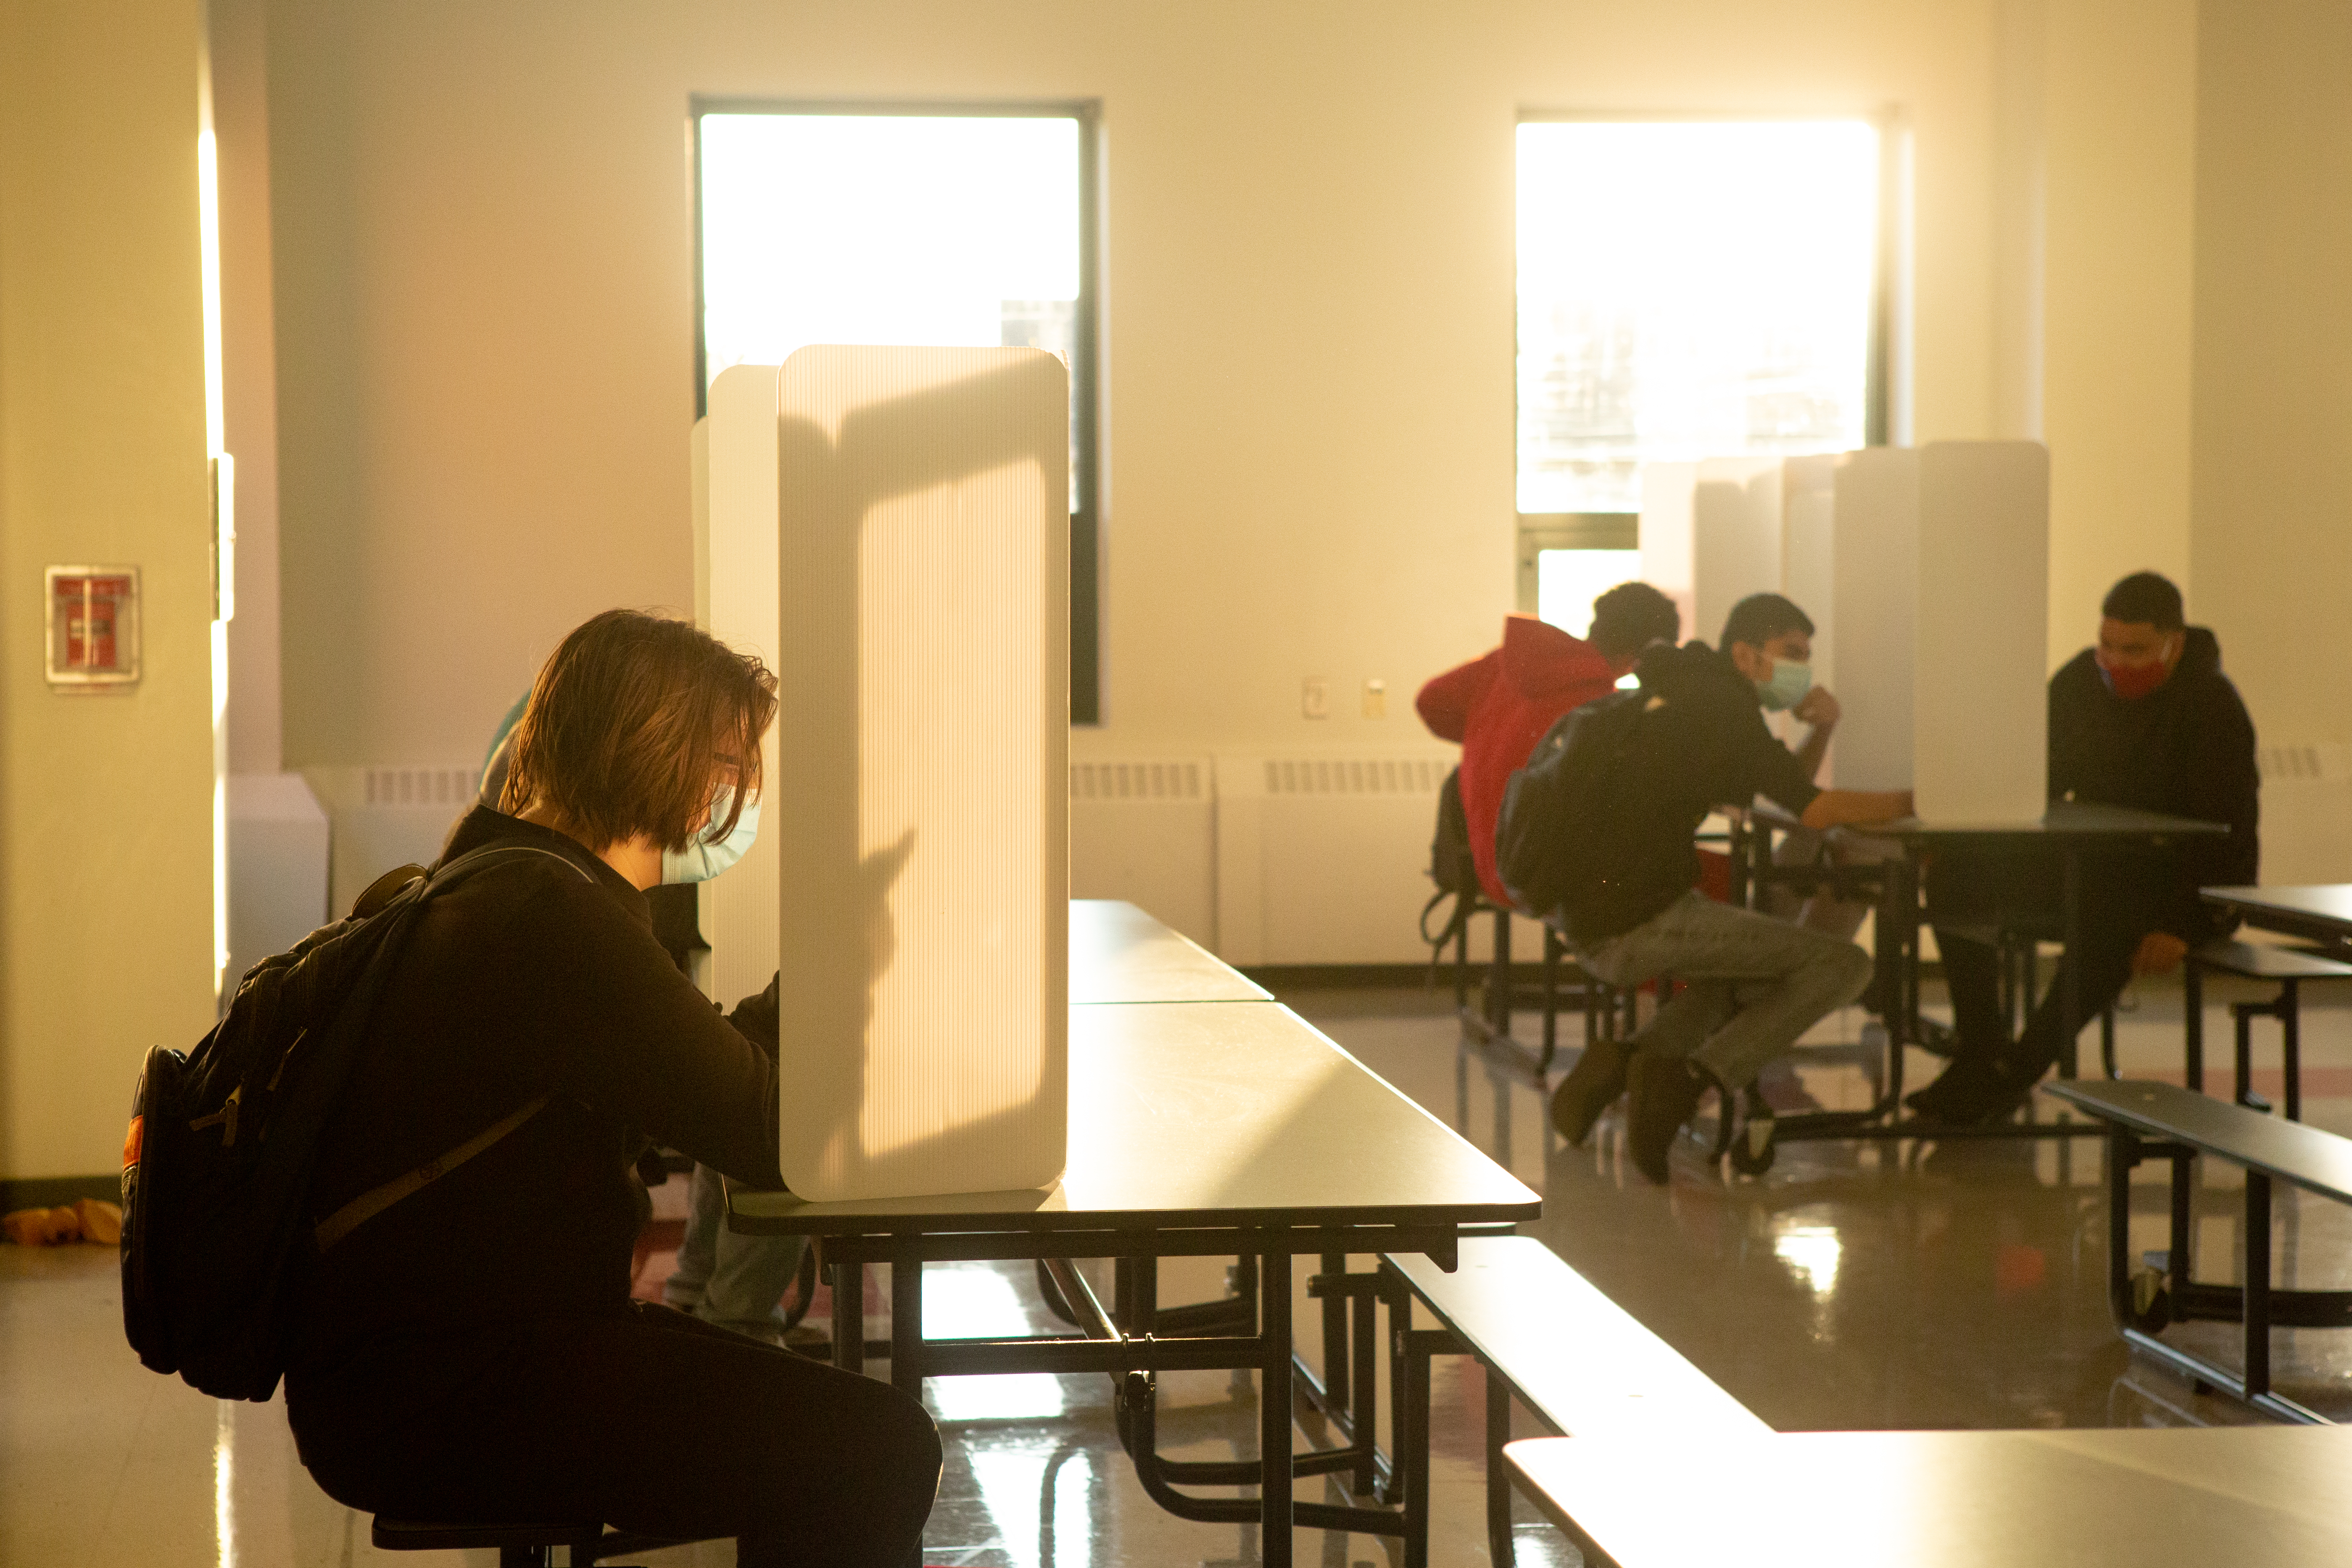 A student wearing a backpack sits on a bench at a table with a trifold partition on top, while three male students in the background also sit at table with partitions.